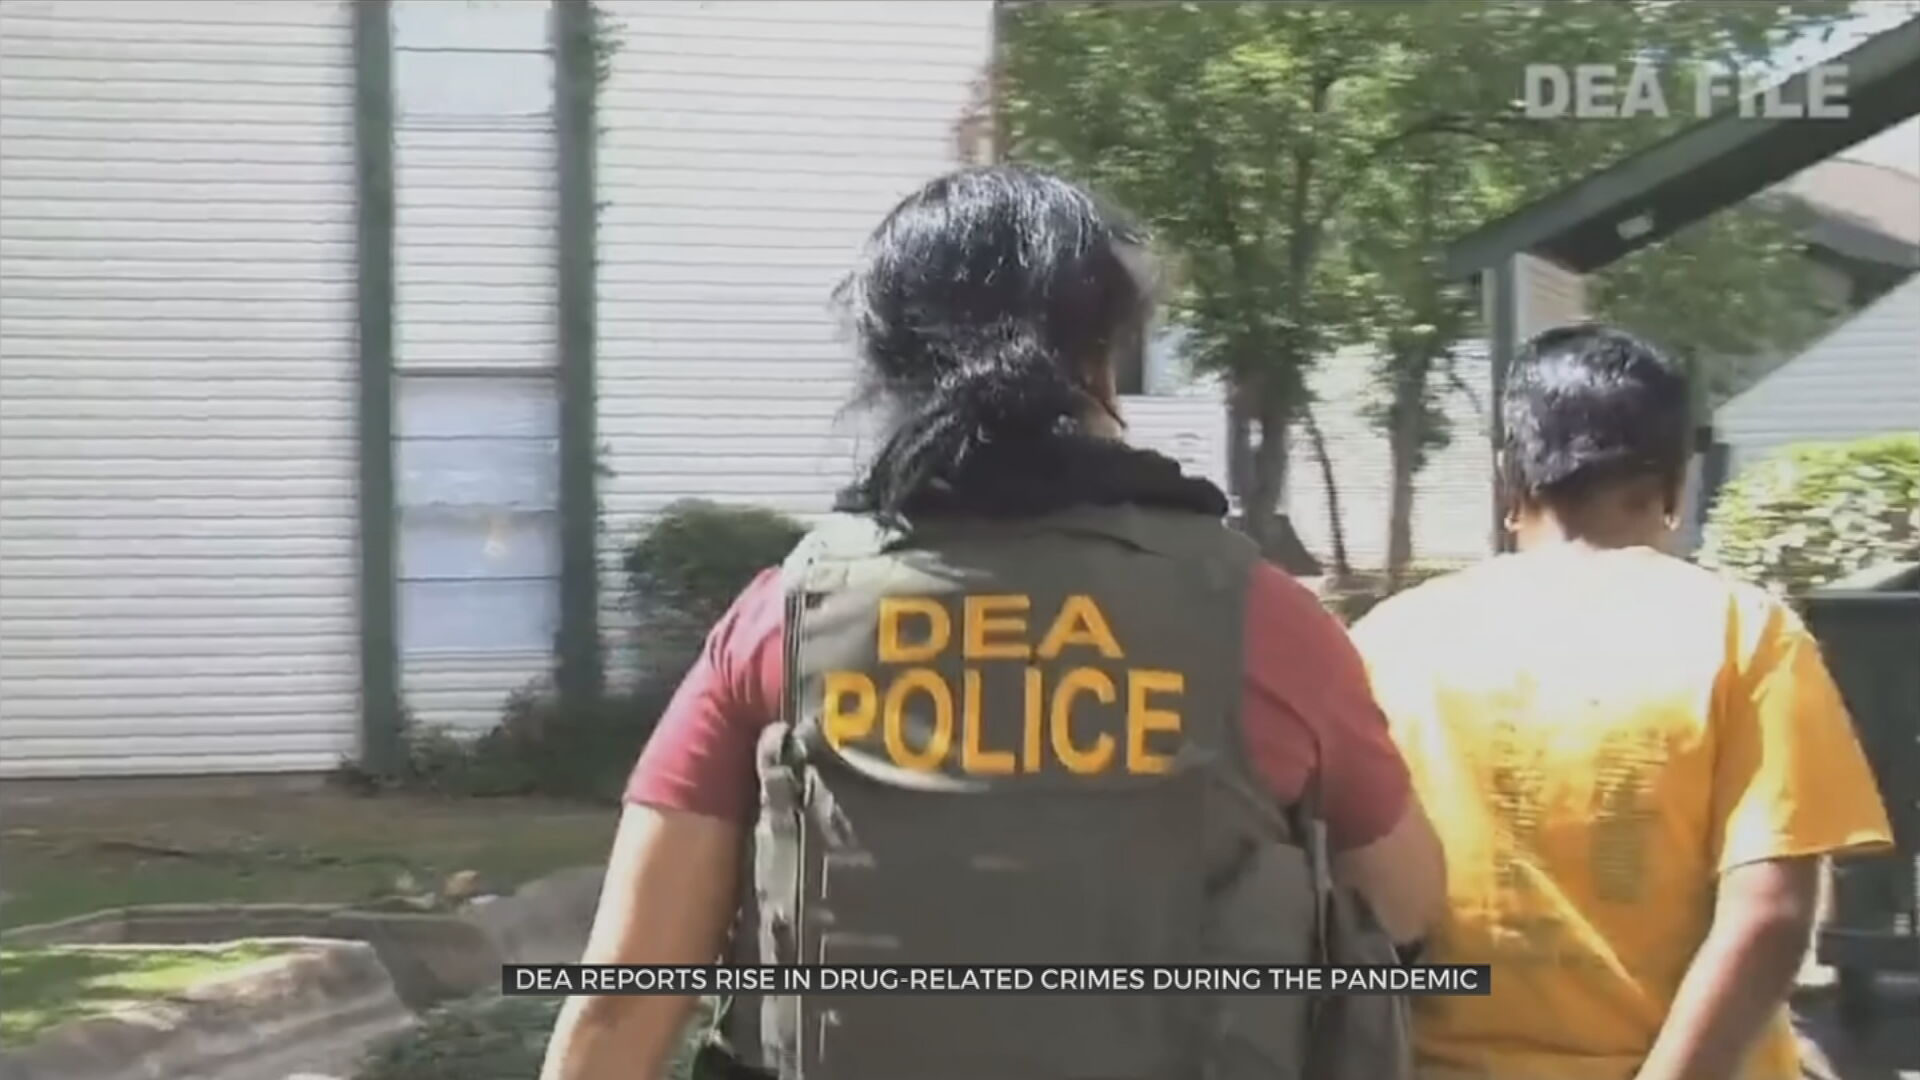 DEA Reports Rise In Drug-Related Crimes During Pandemic